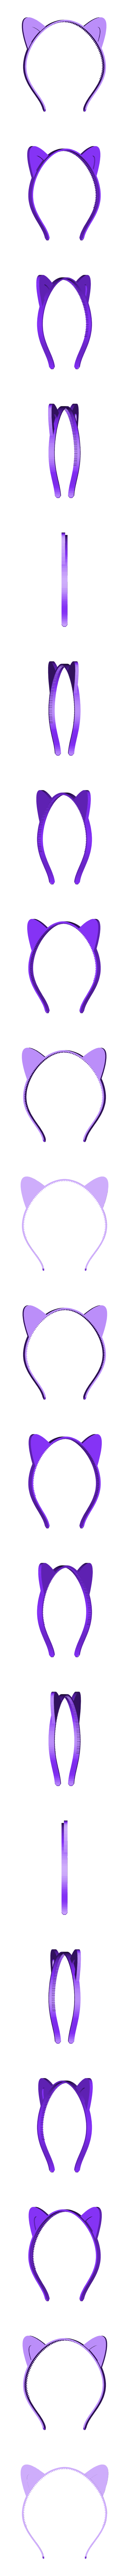 ears-pointed-small.stl Download free STL file Animal ears headband, customizable • 3D printer design, arpruss